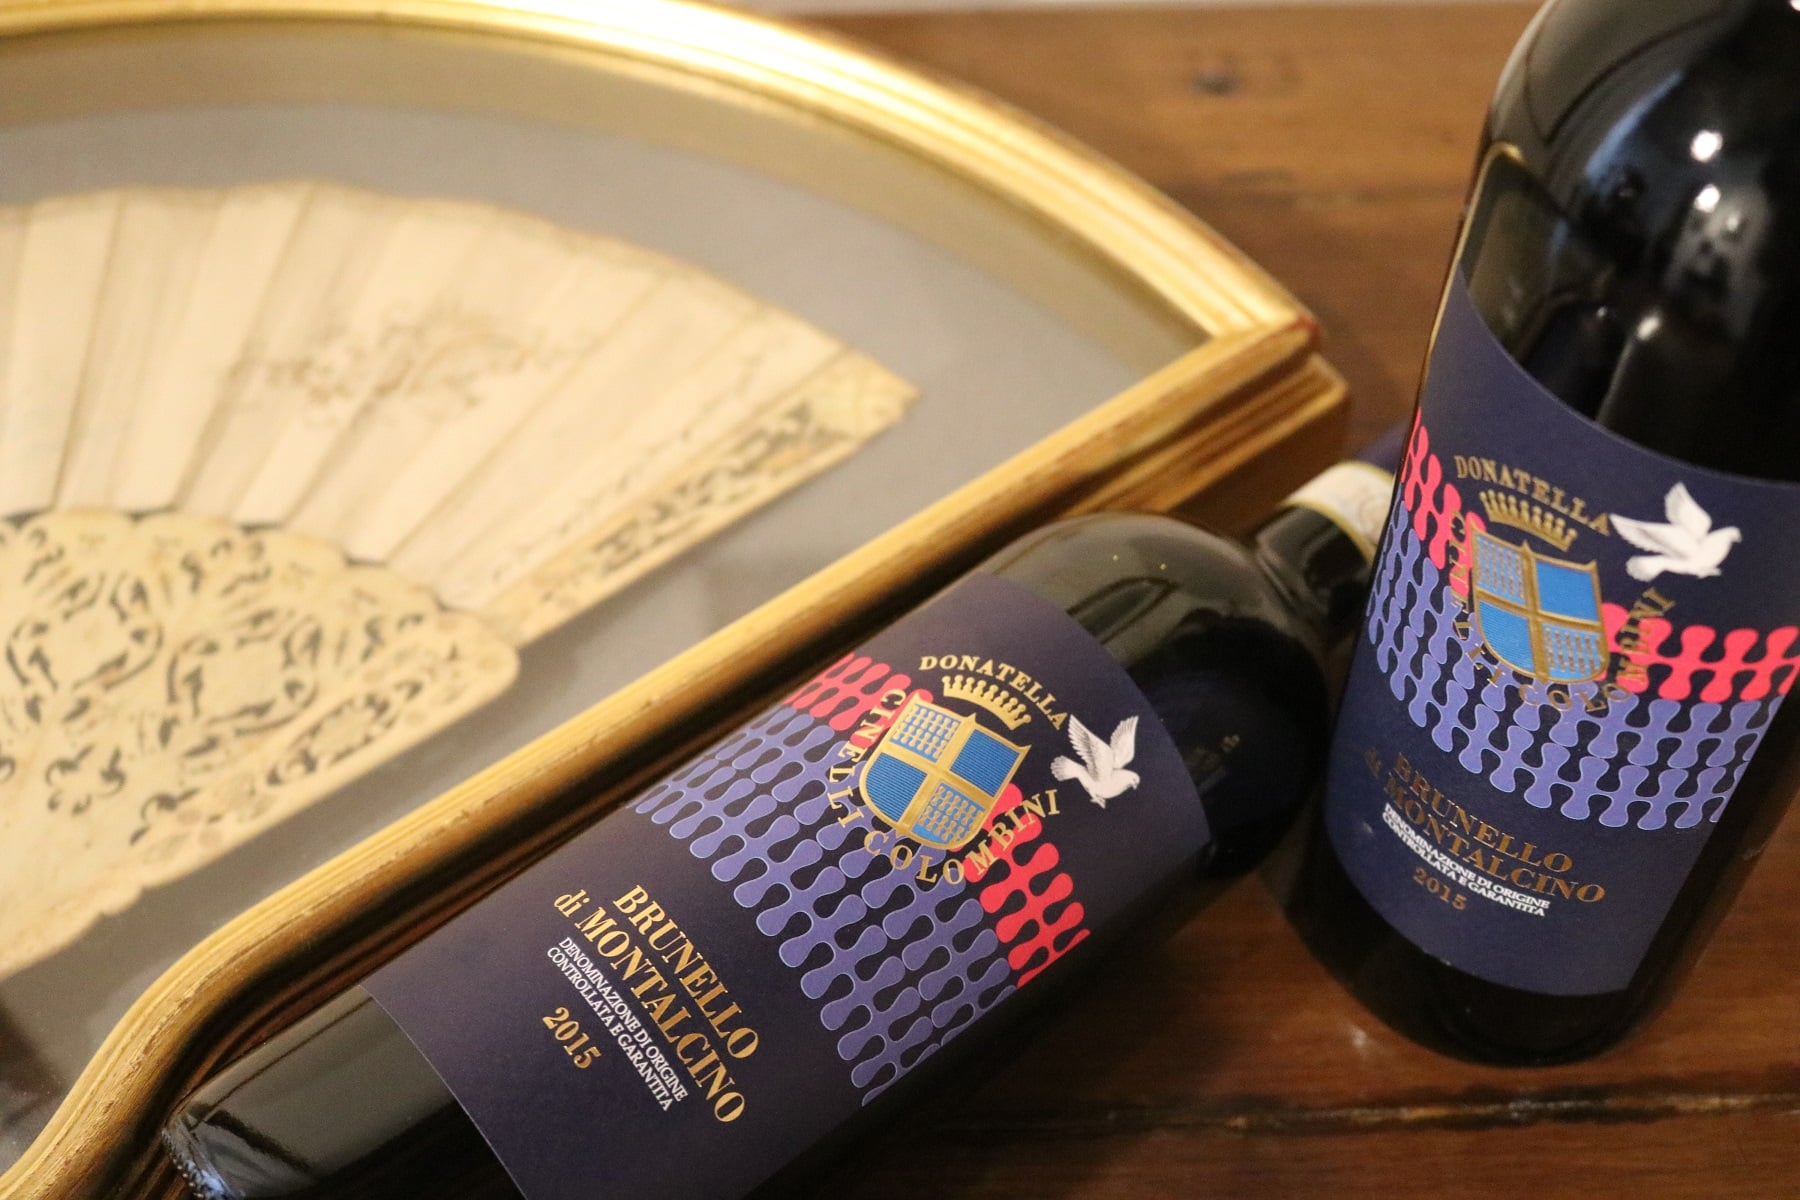 Vino verticale Brunello 2015 Donatella Cinelli Colombini